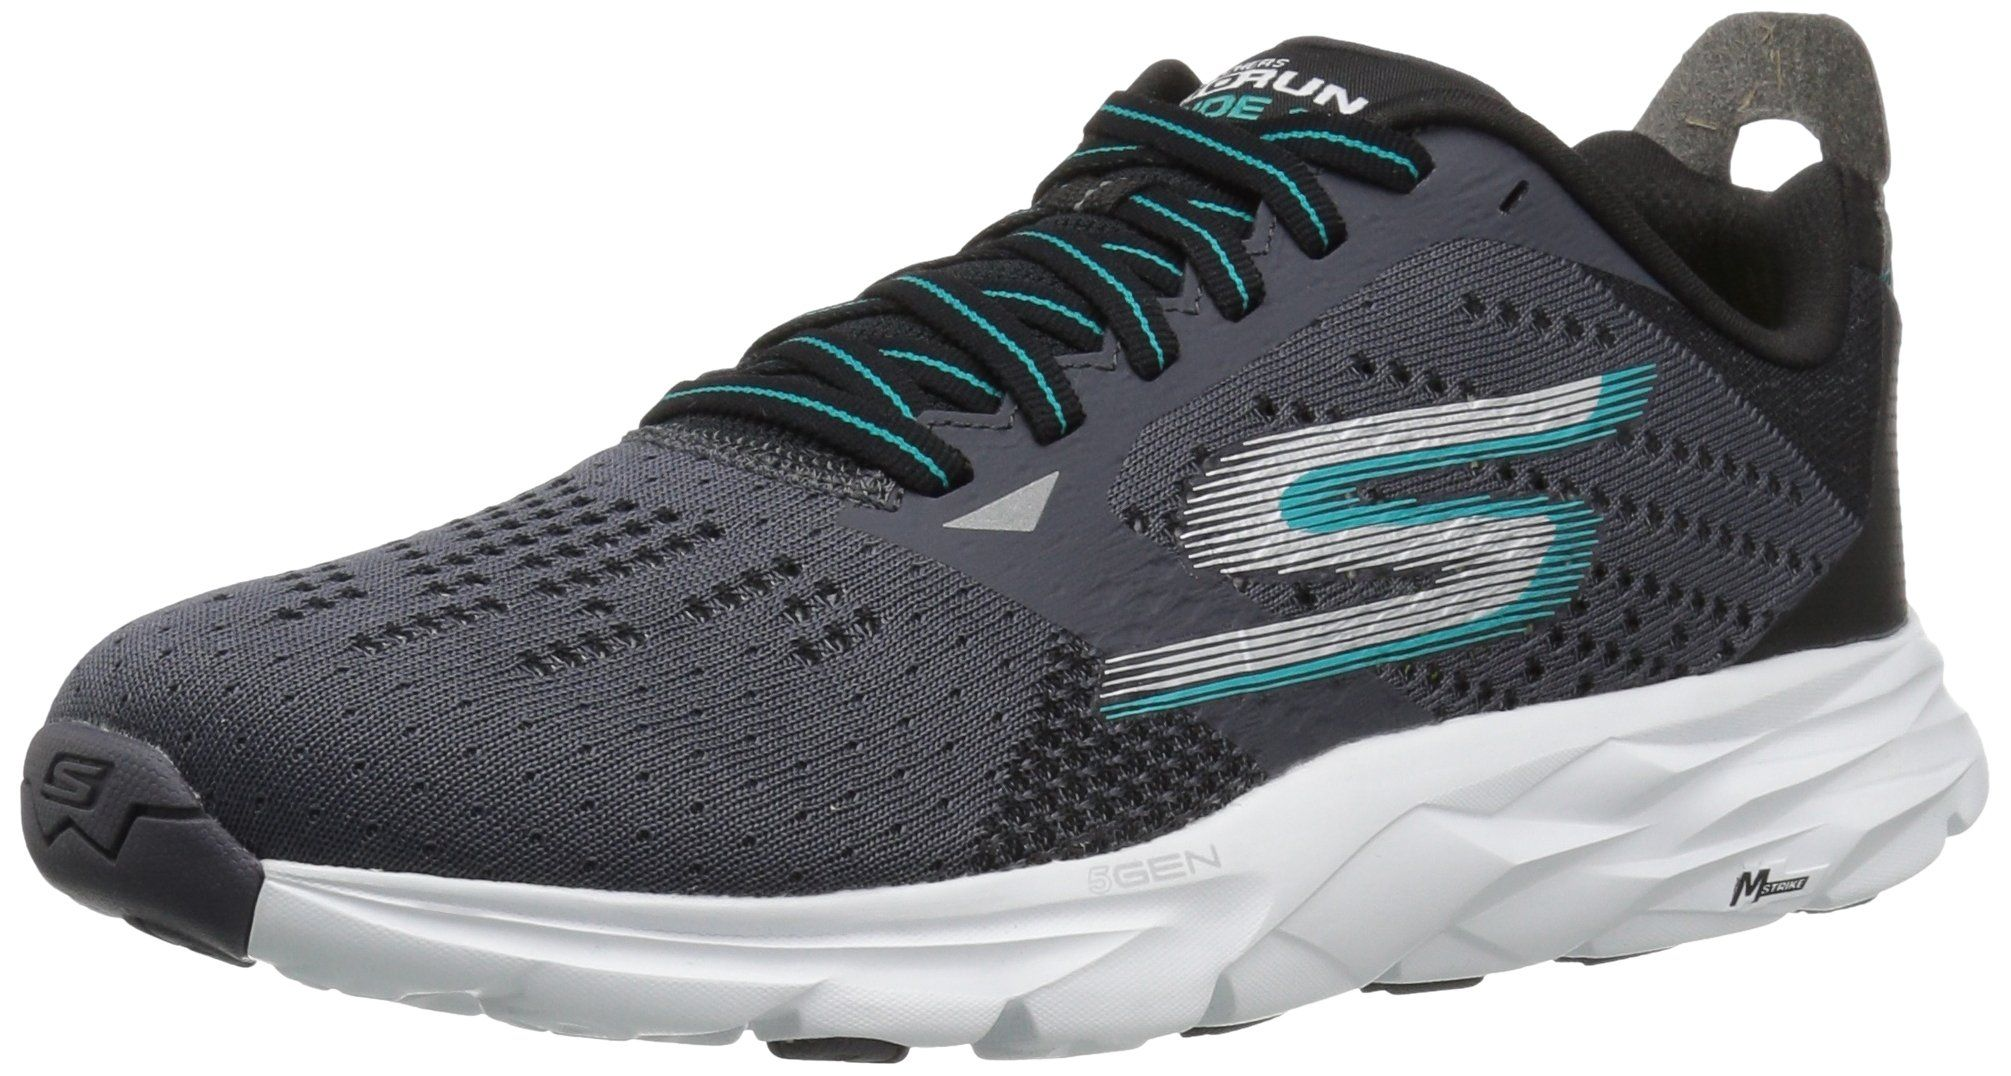 Performance Go Run 400-Swiftly, Chaussures Multisport Outdoor Femme, Noir (Black White), 37 EUSkechers